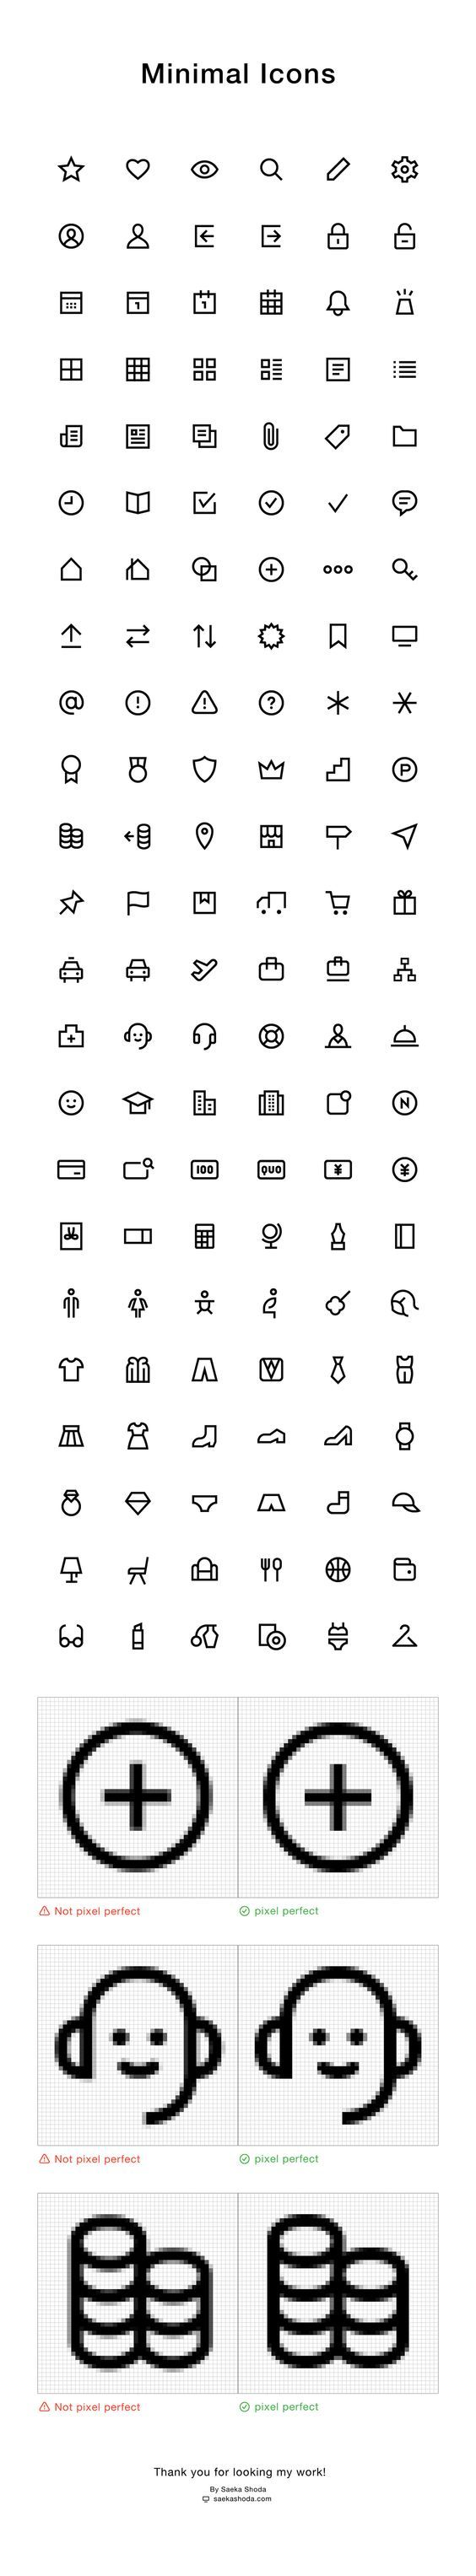 Works | Minimal Icons on Behance By Saeka Shoda: